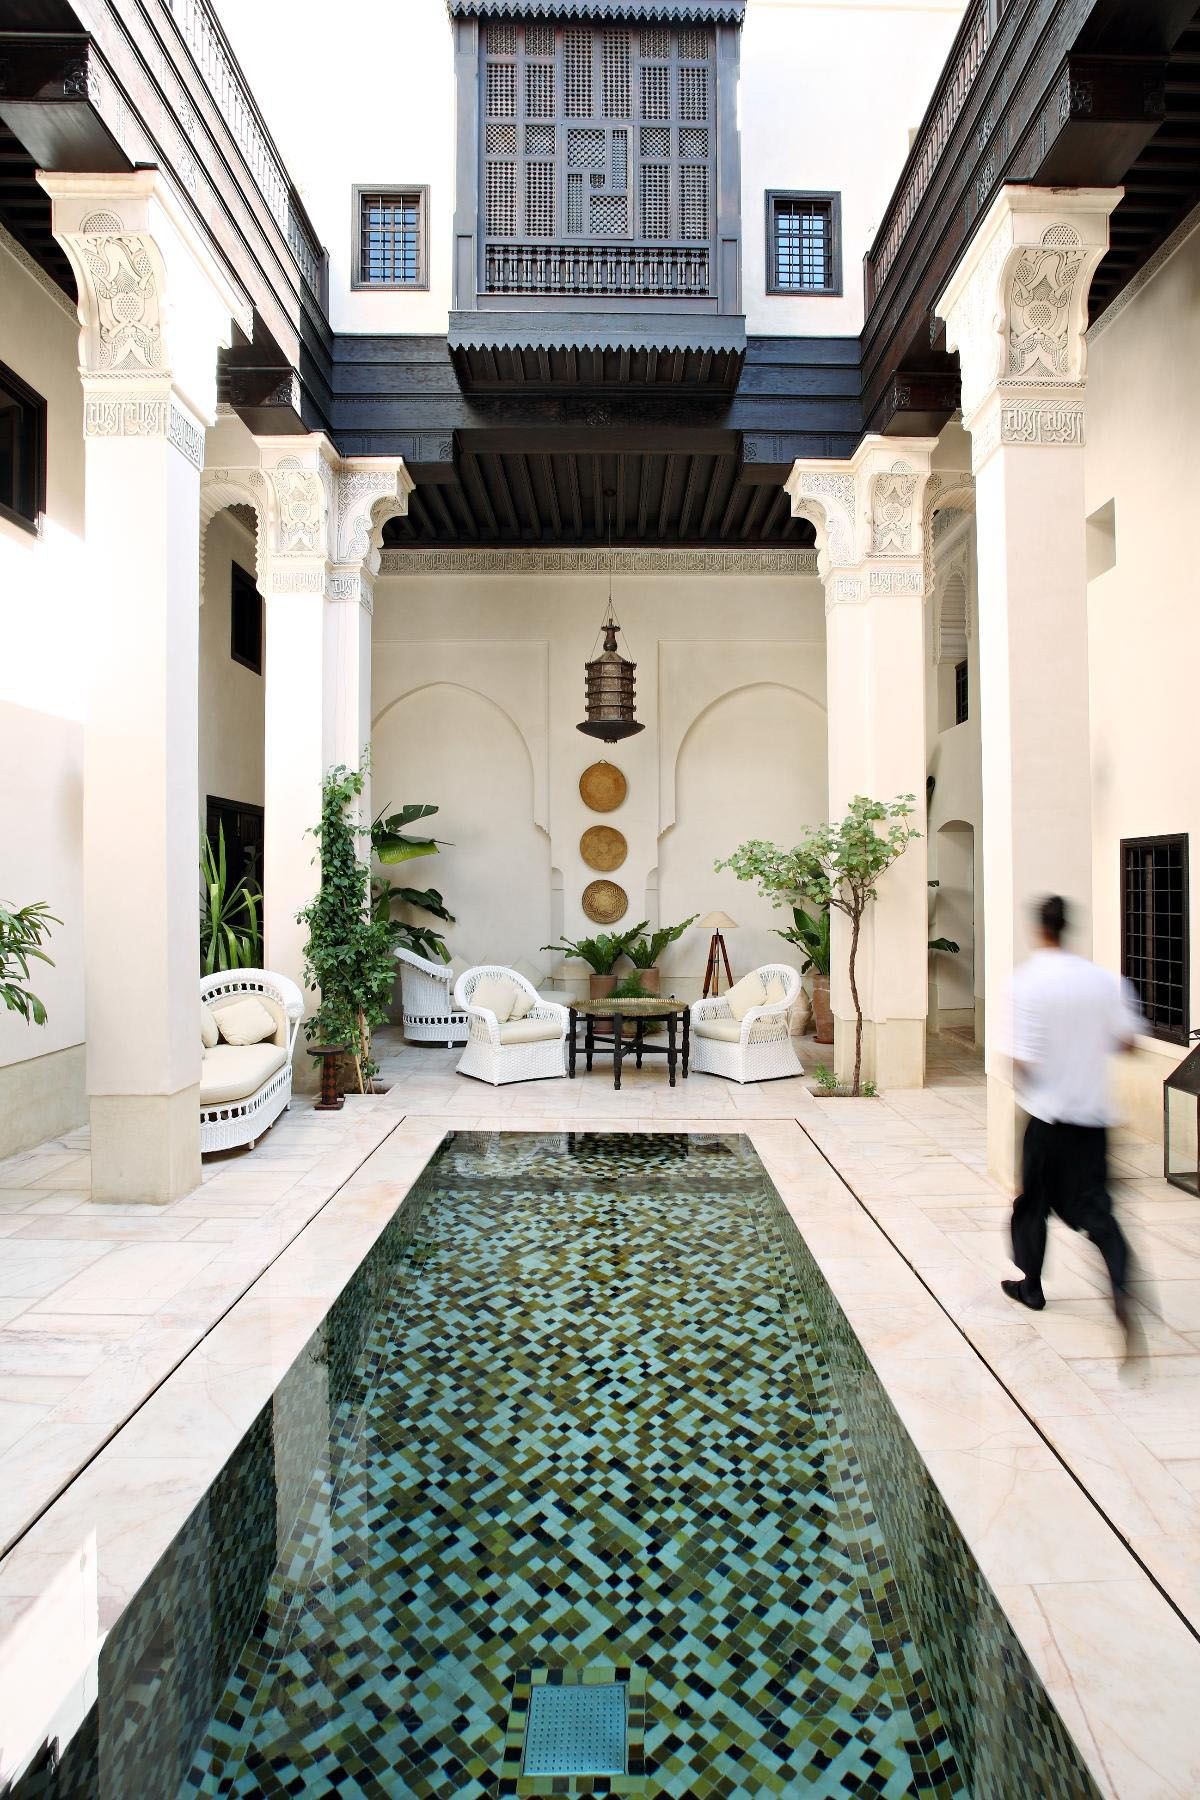 Top 10 best riad hotels in marrakech wanderlust for Best riads in marrakesh